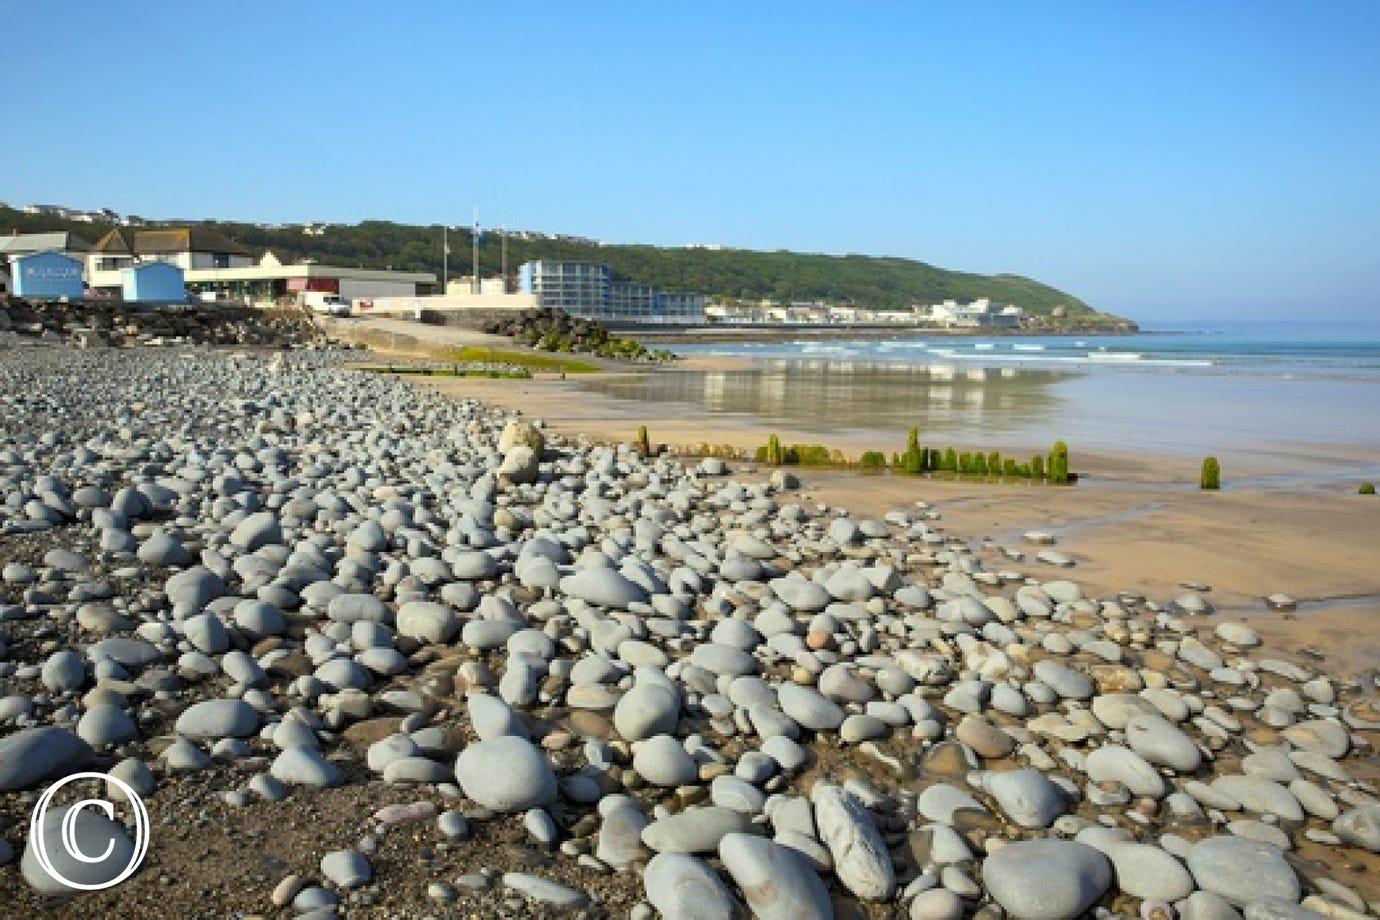 Just a short stroll away from the lovely Westward Ho! beach